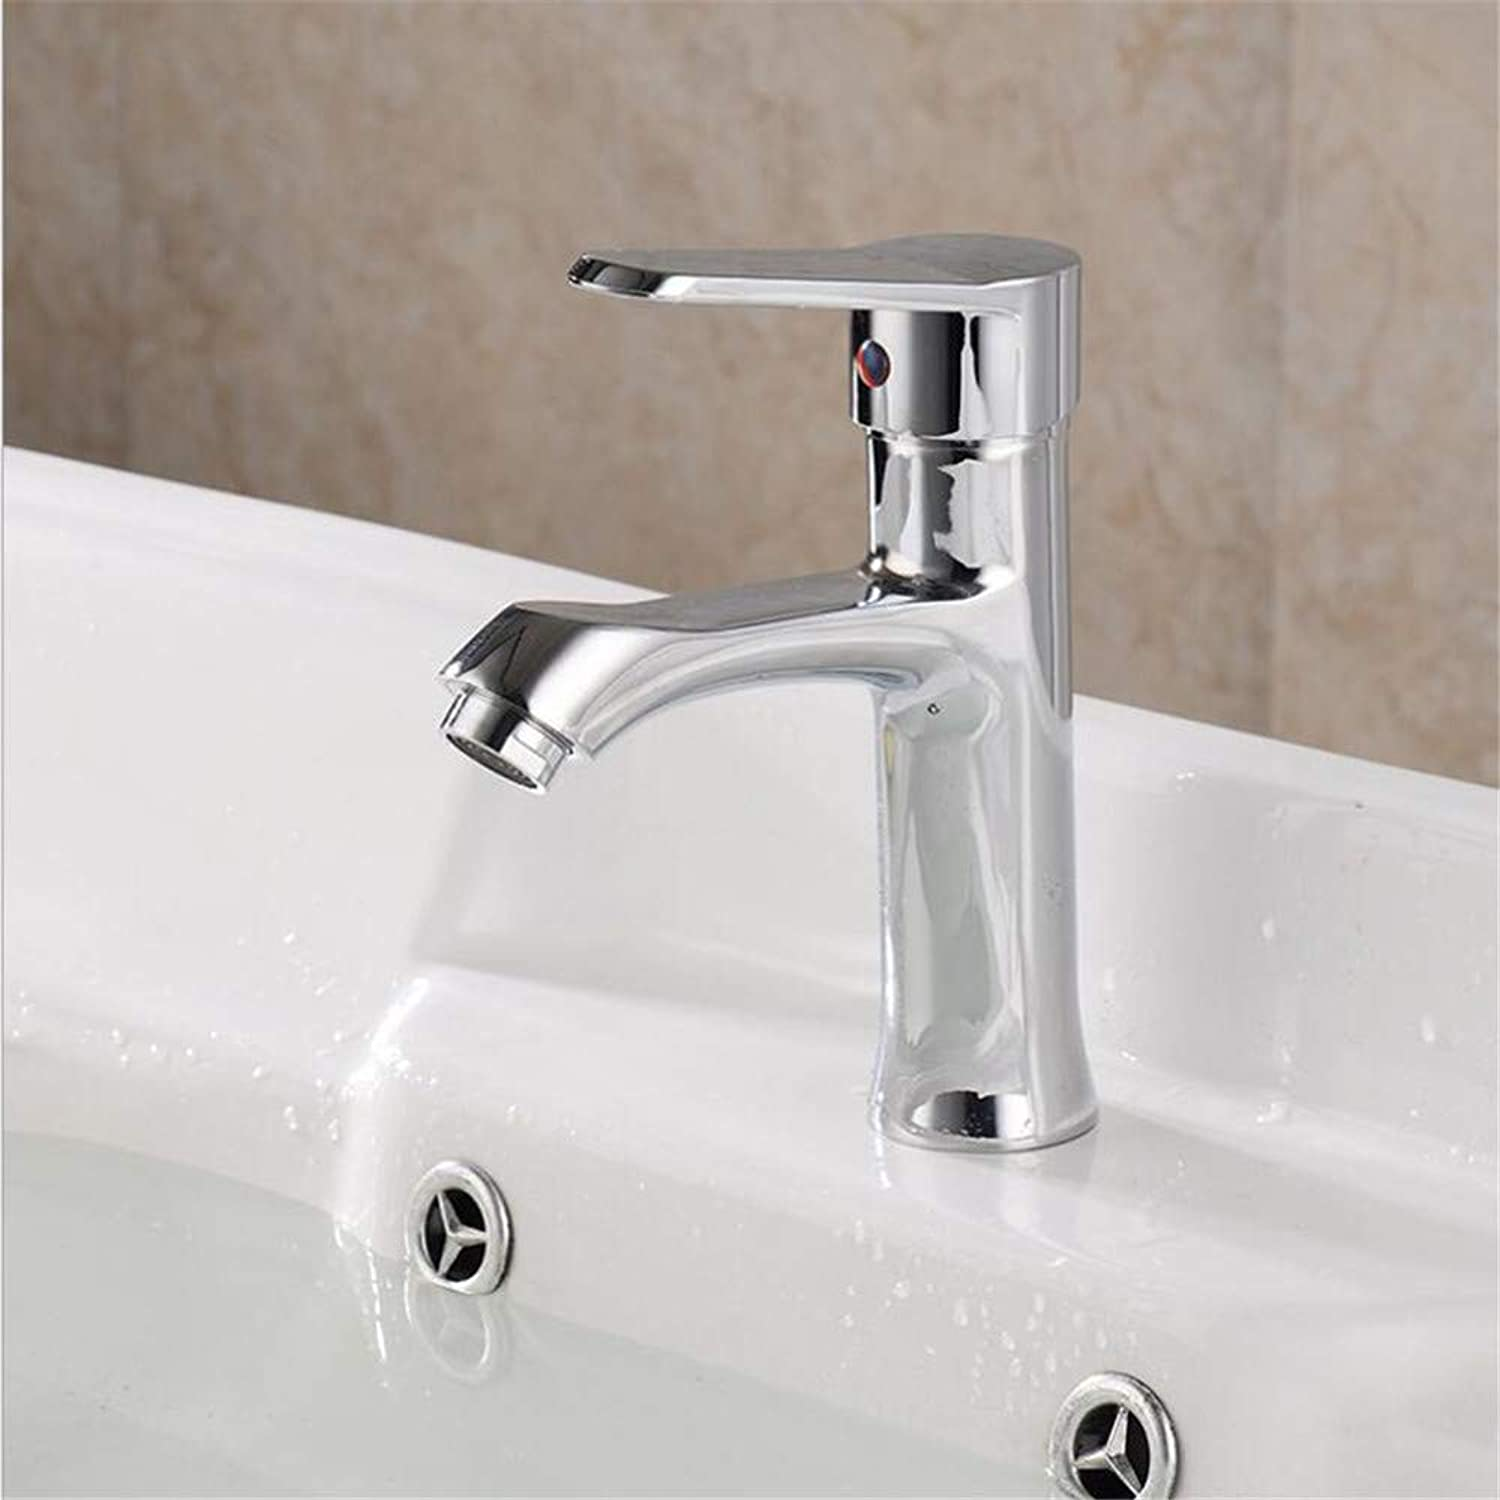 Basin Mixer Tap ?Single Hole Basin Faucet Hot and Cold Sink Faucet Bathroom Cabinet Faucet